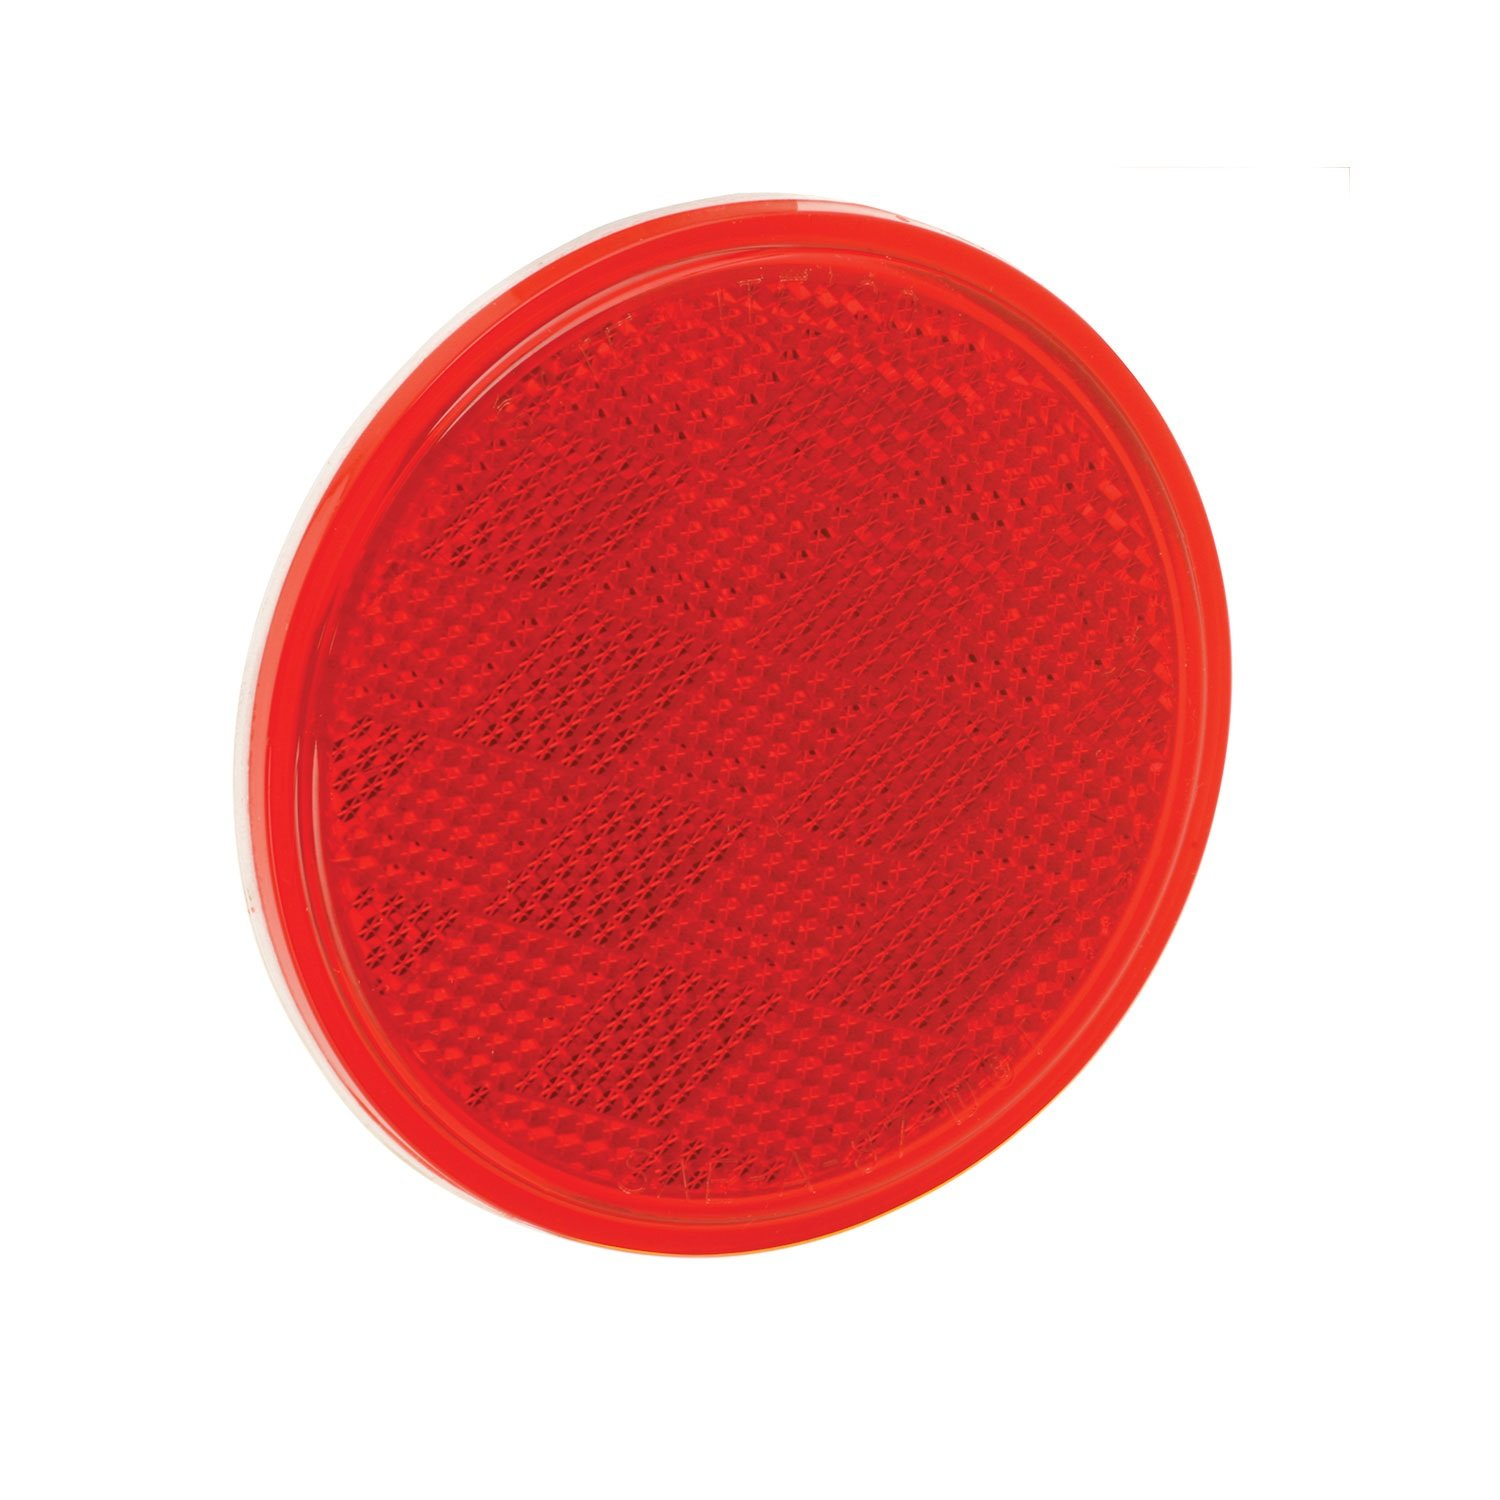 Round 3-3//16 Red Bargman 70-38-010 Reflector with Adhesive Mount